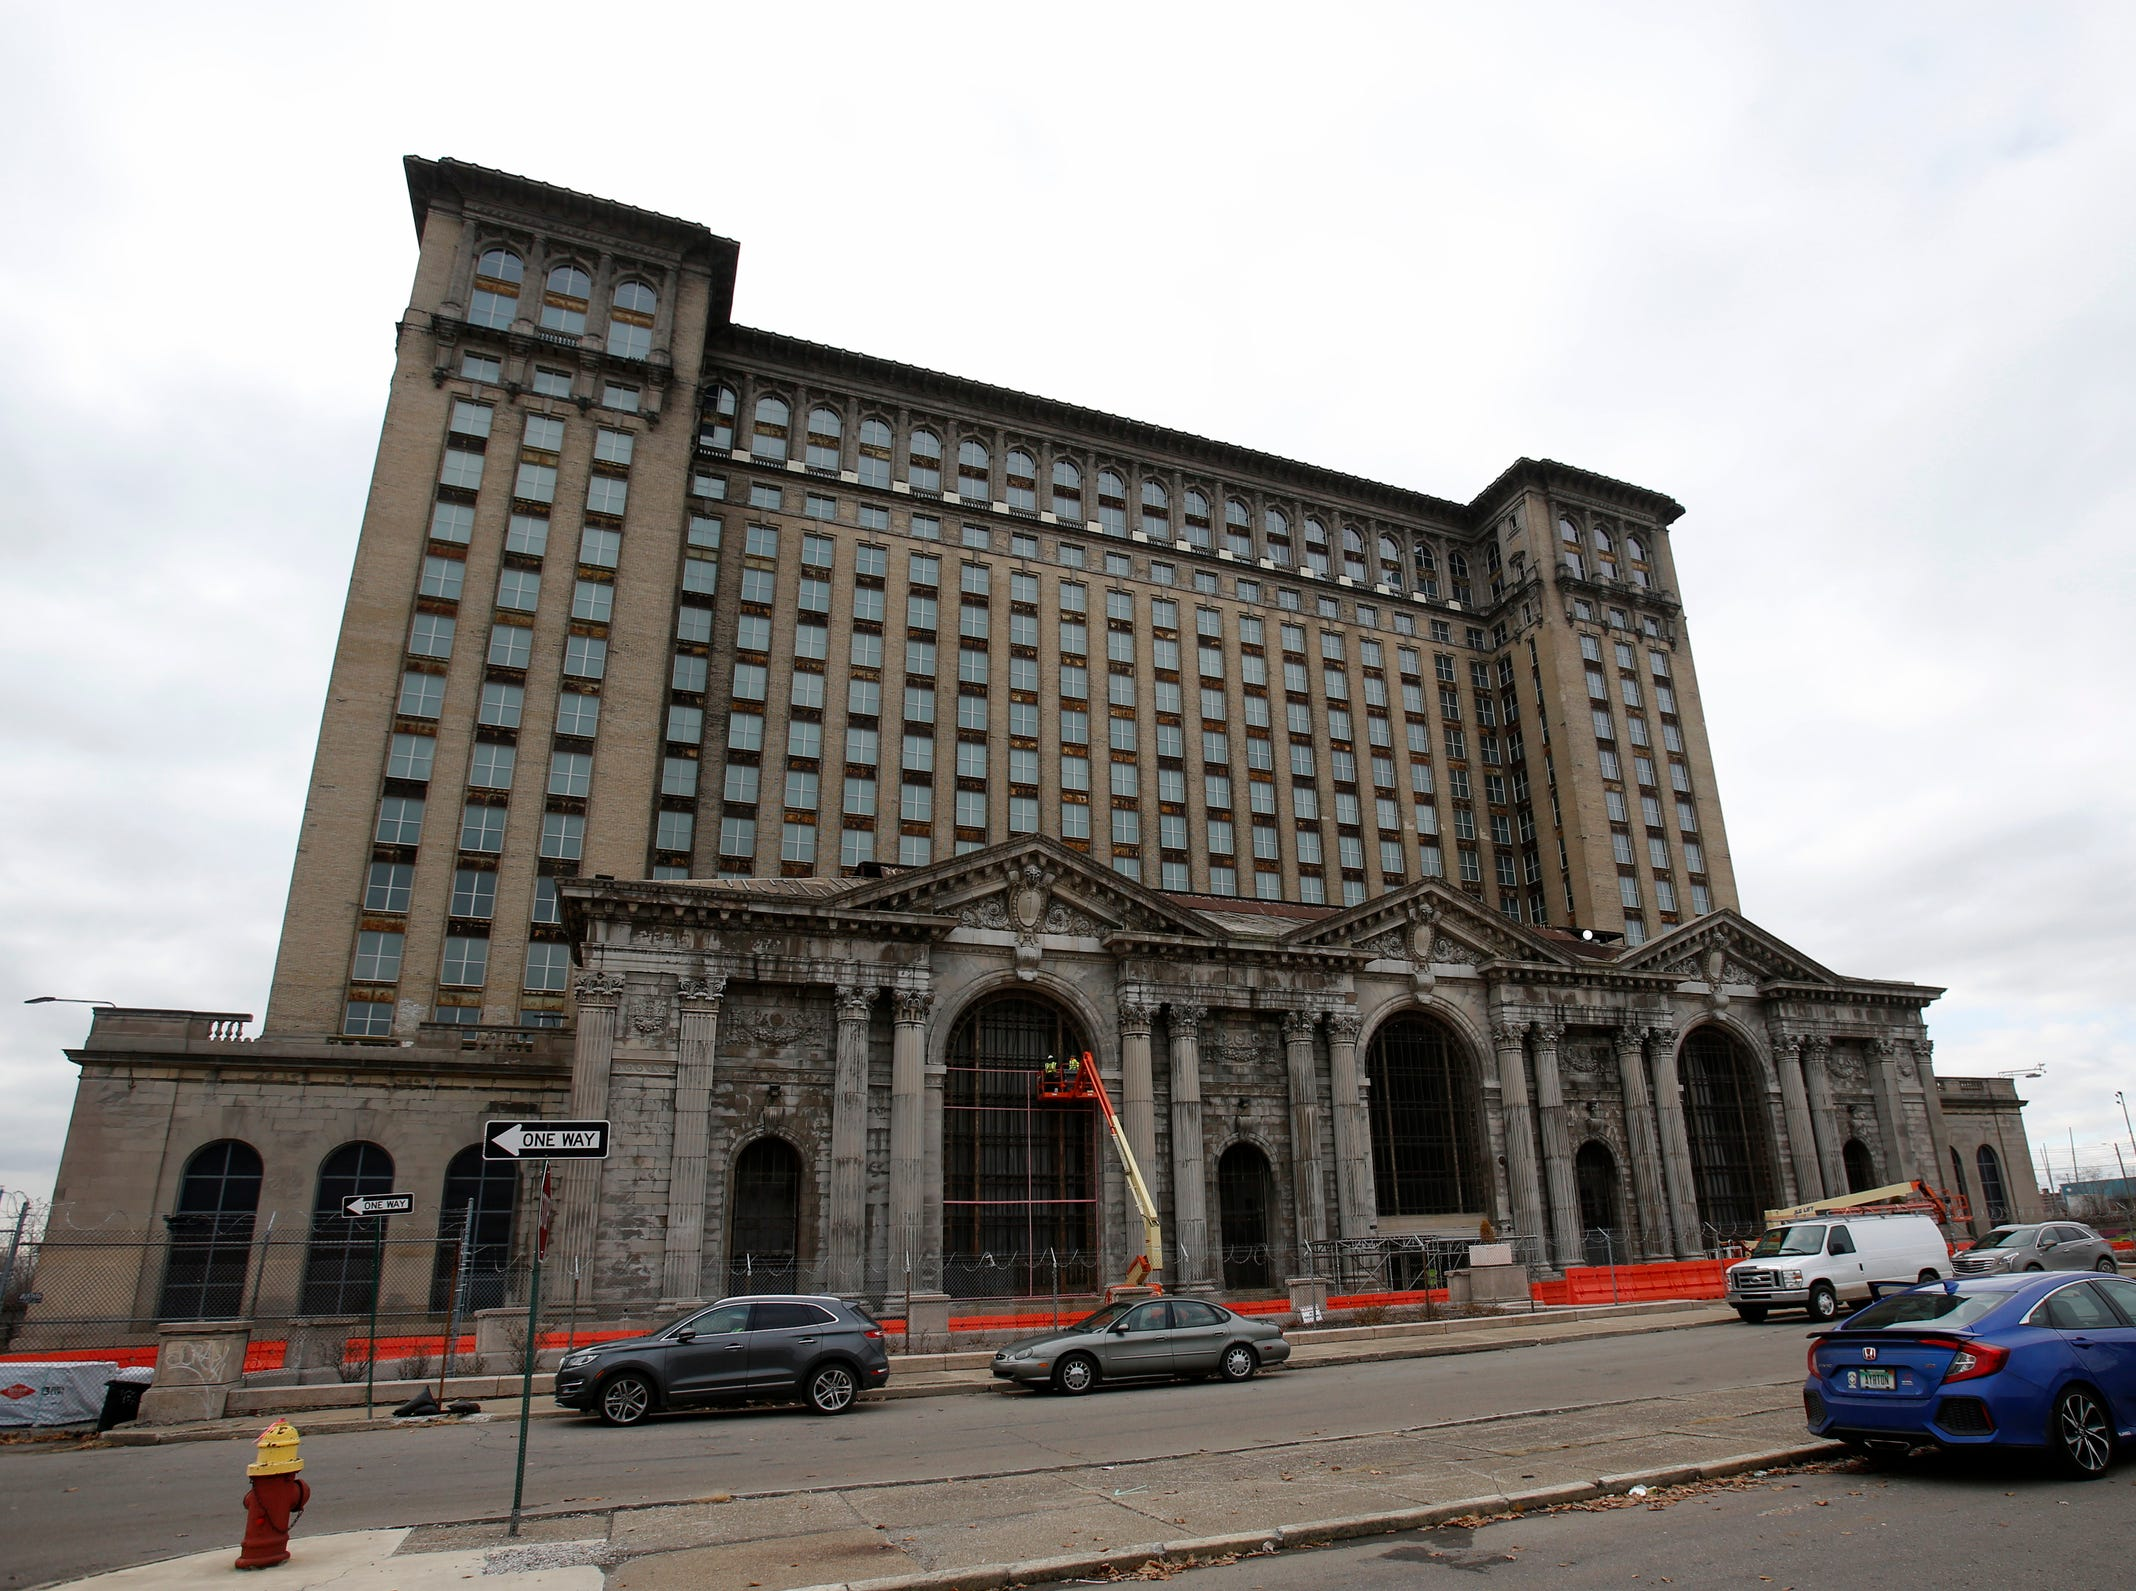 Michigan Central Station in Detroit on Tuesday, December 4, 2018.